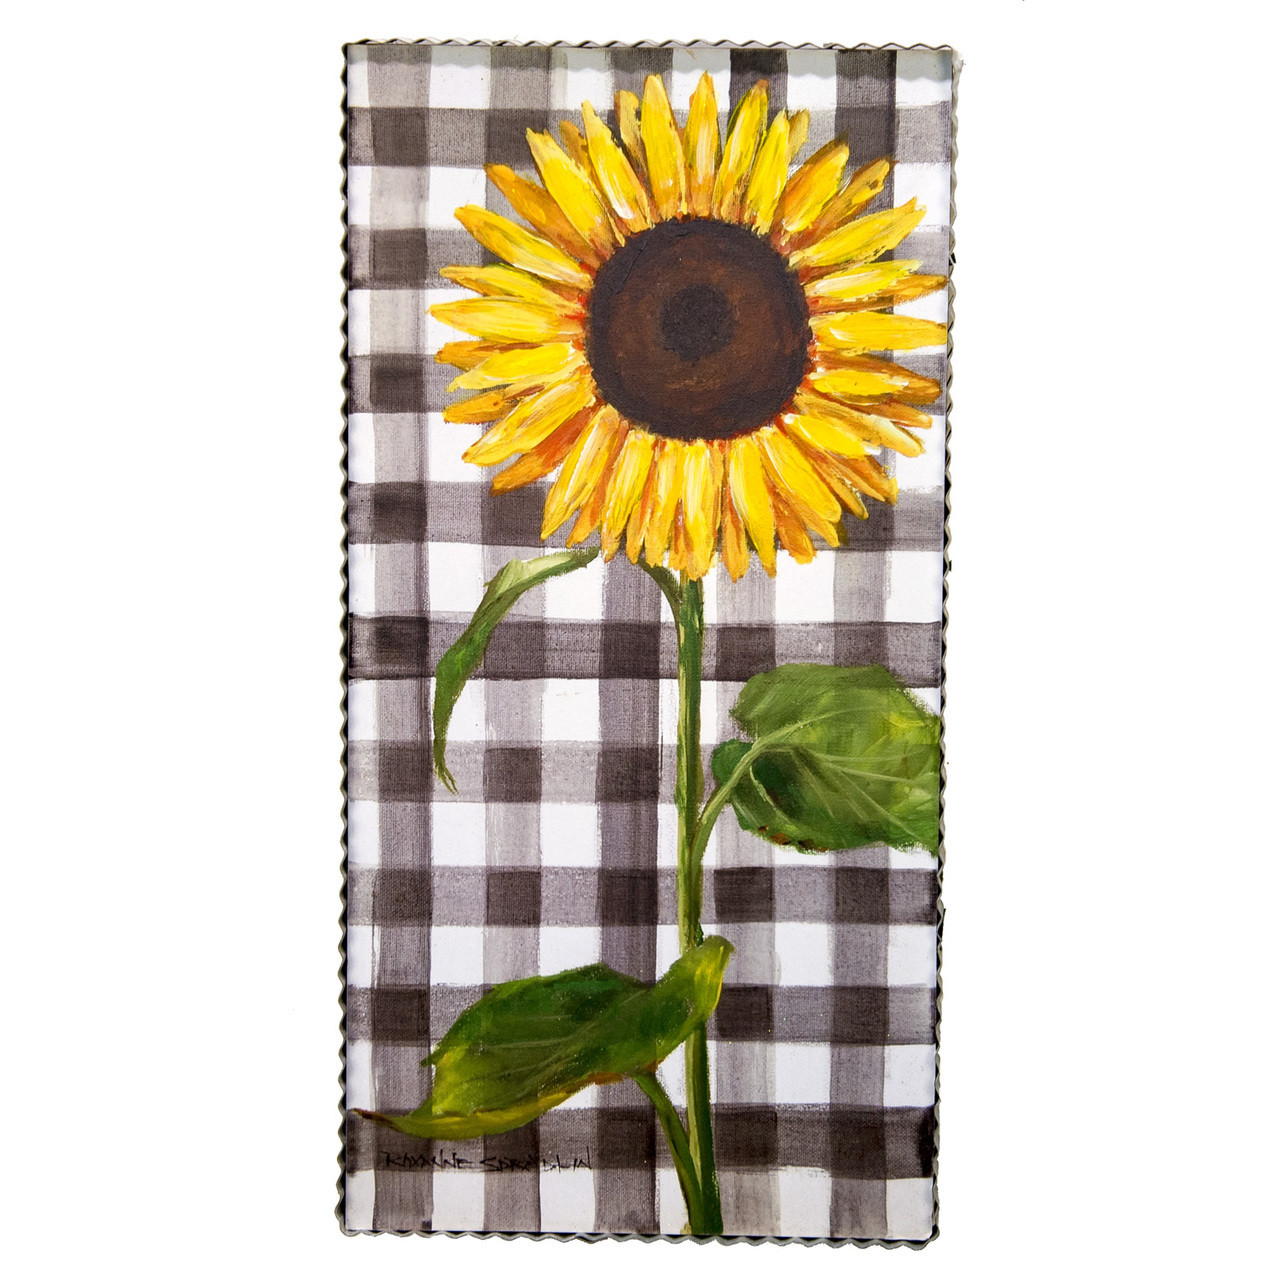 Gallery Gingham Sunflower Home Decor Accents For Your Style